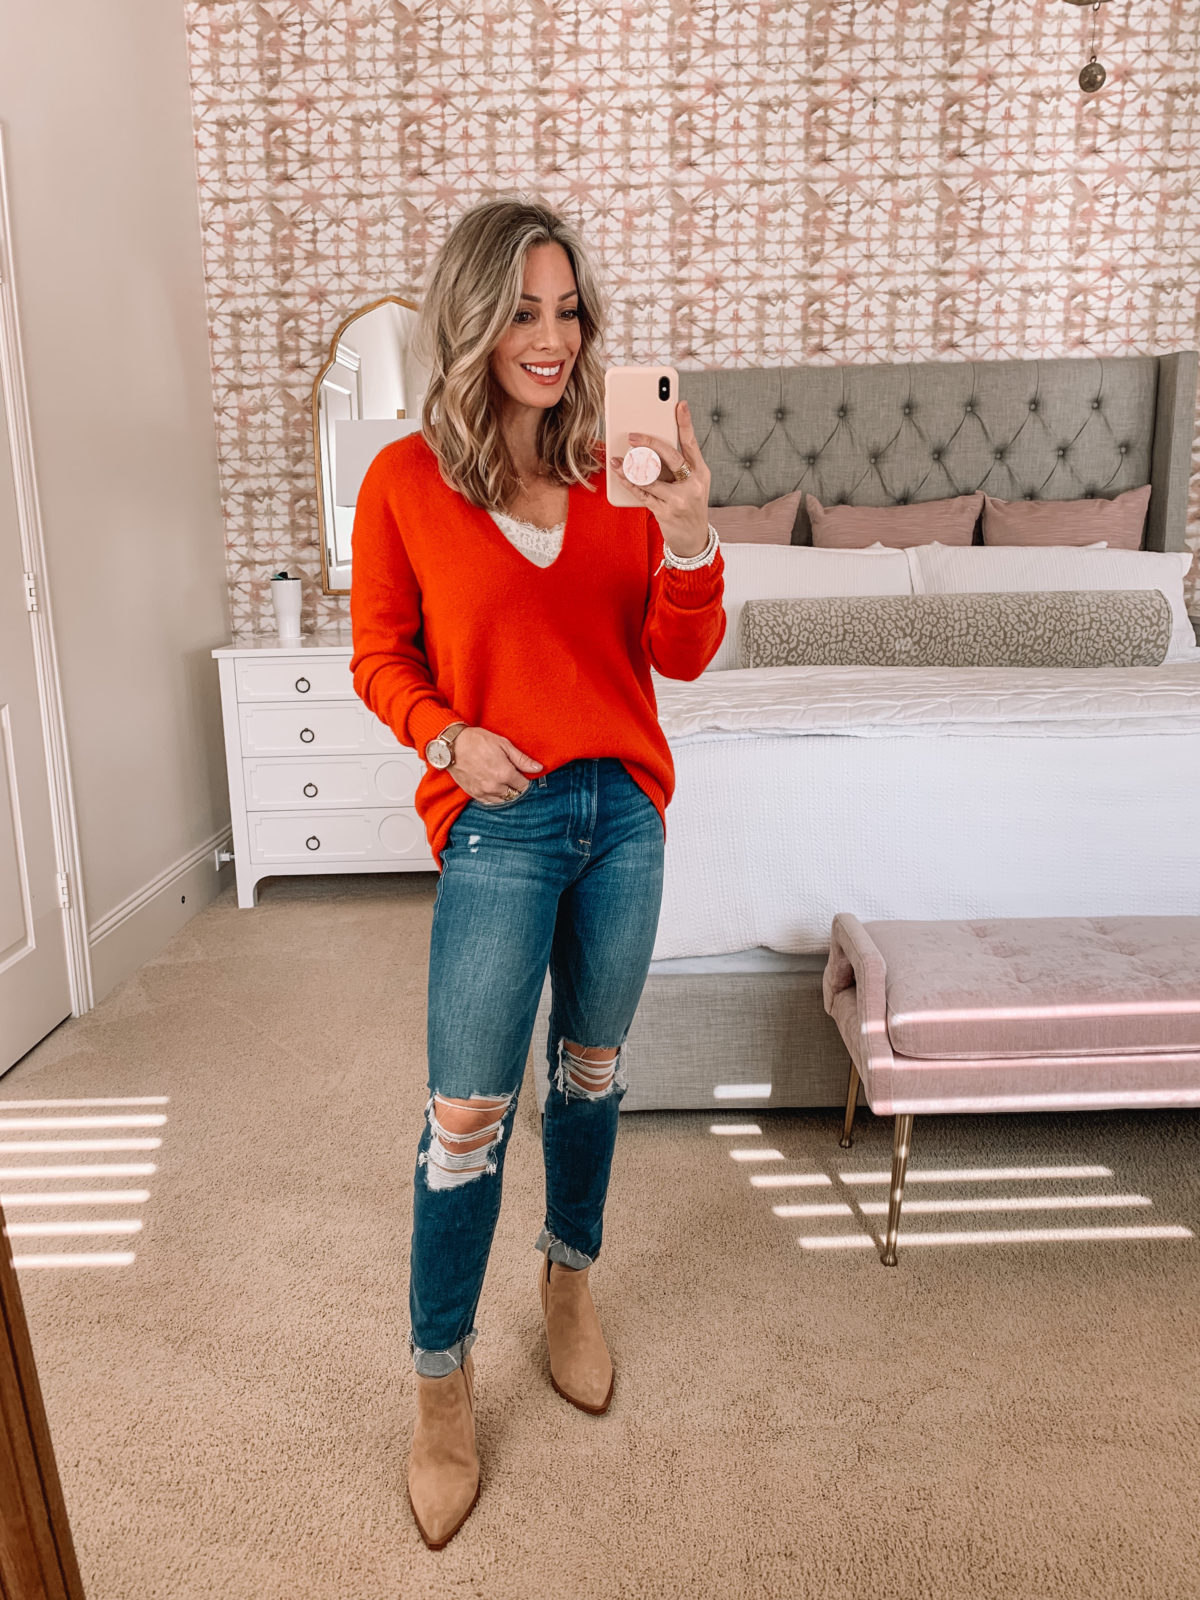 Dressing Room try on Nordstrom, V Neck Sweater, Jeans, Booties